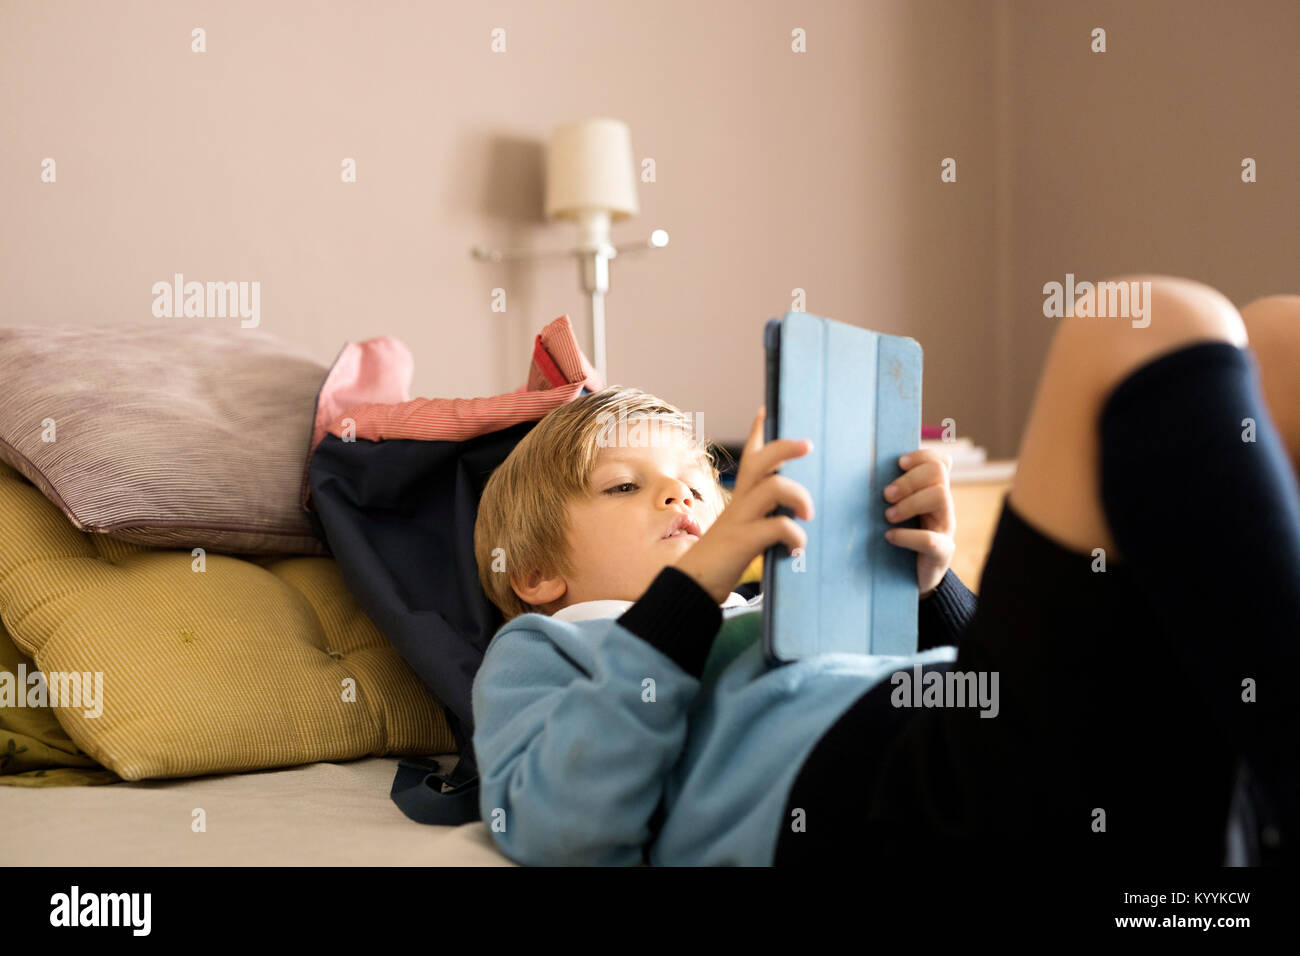 Boy using digital tablet in the bedroom in the bedroom - Stock Image